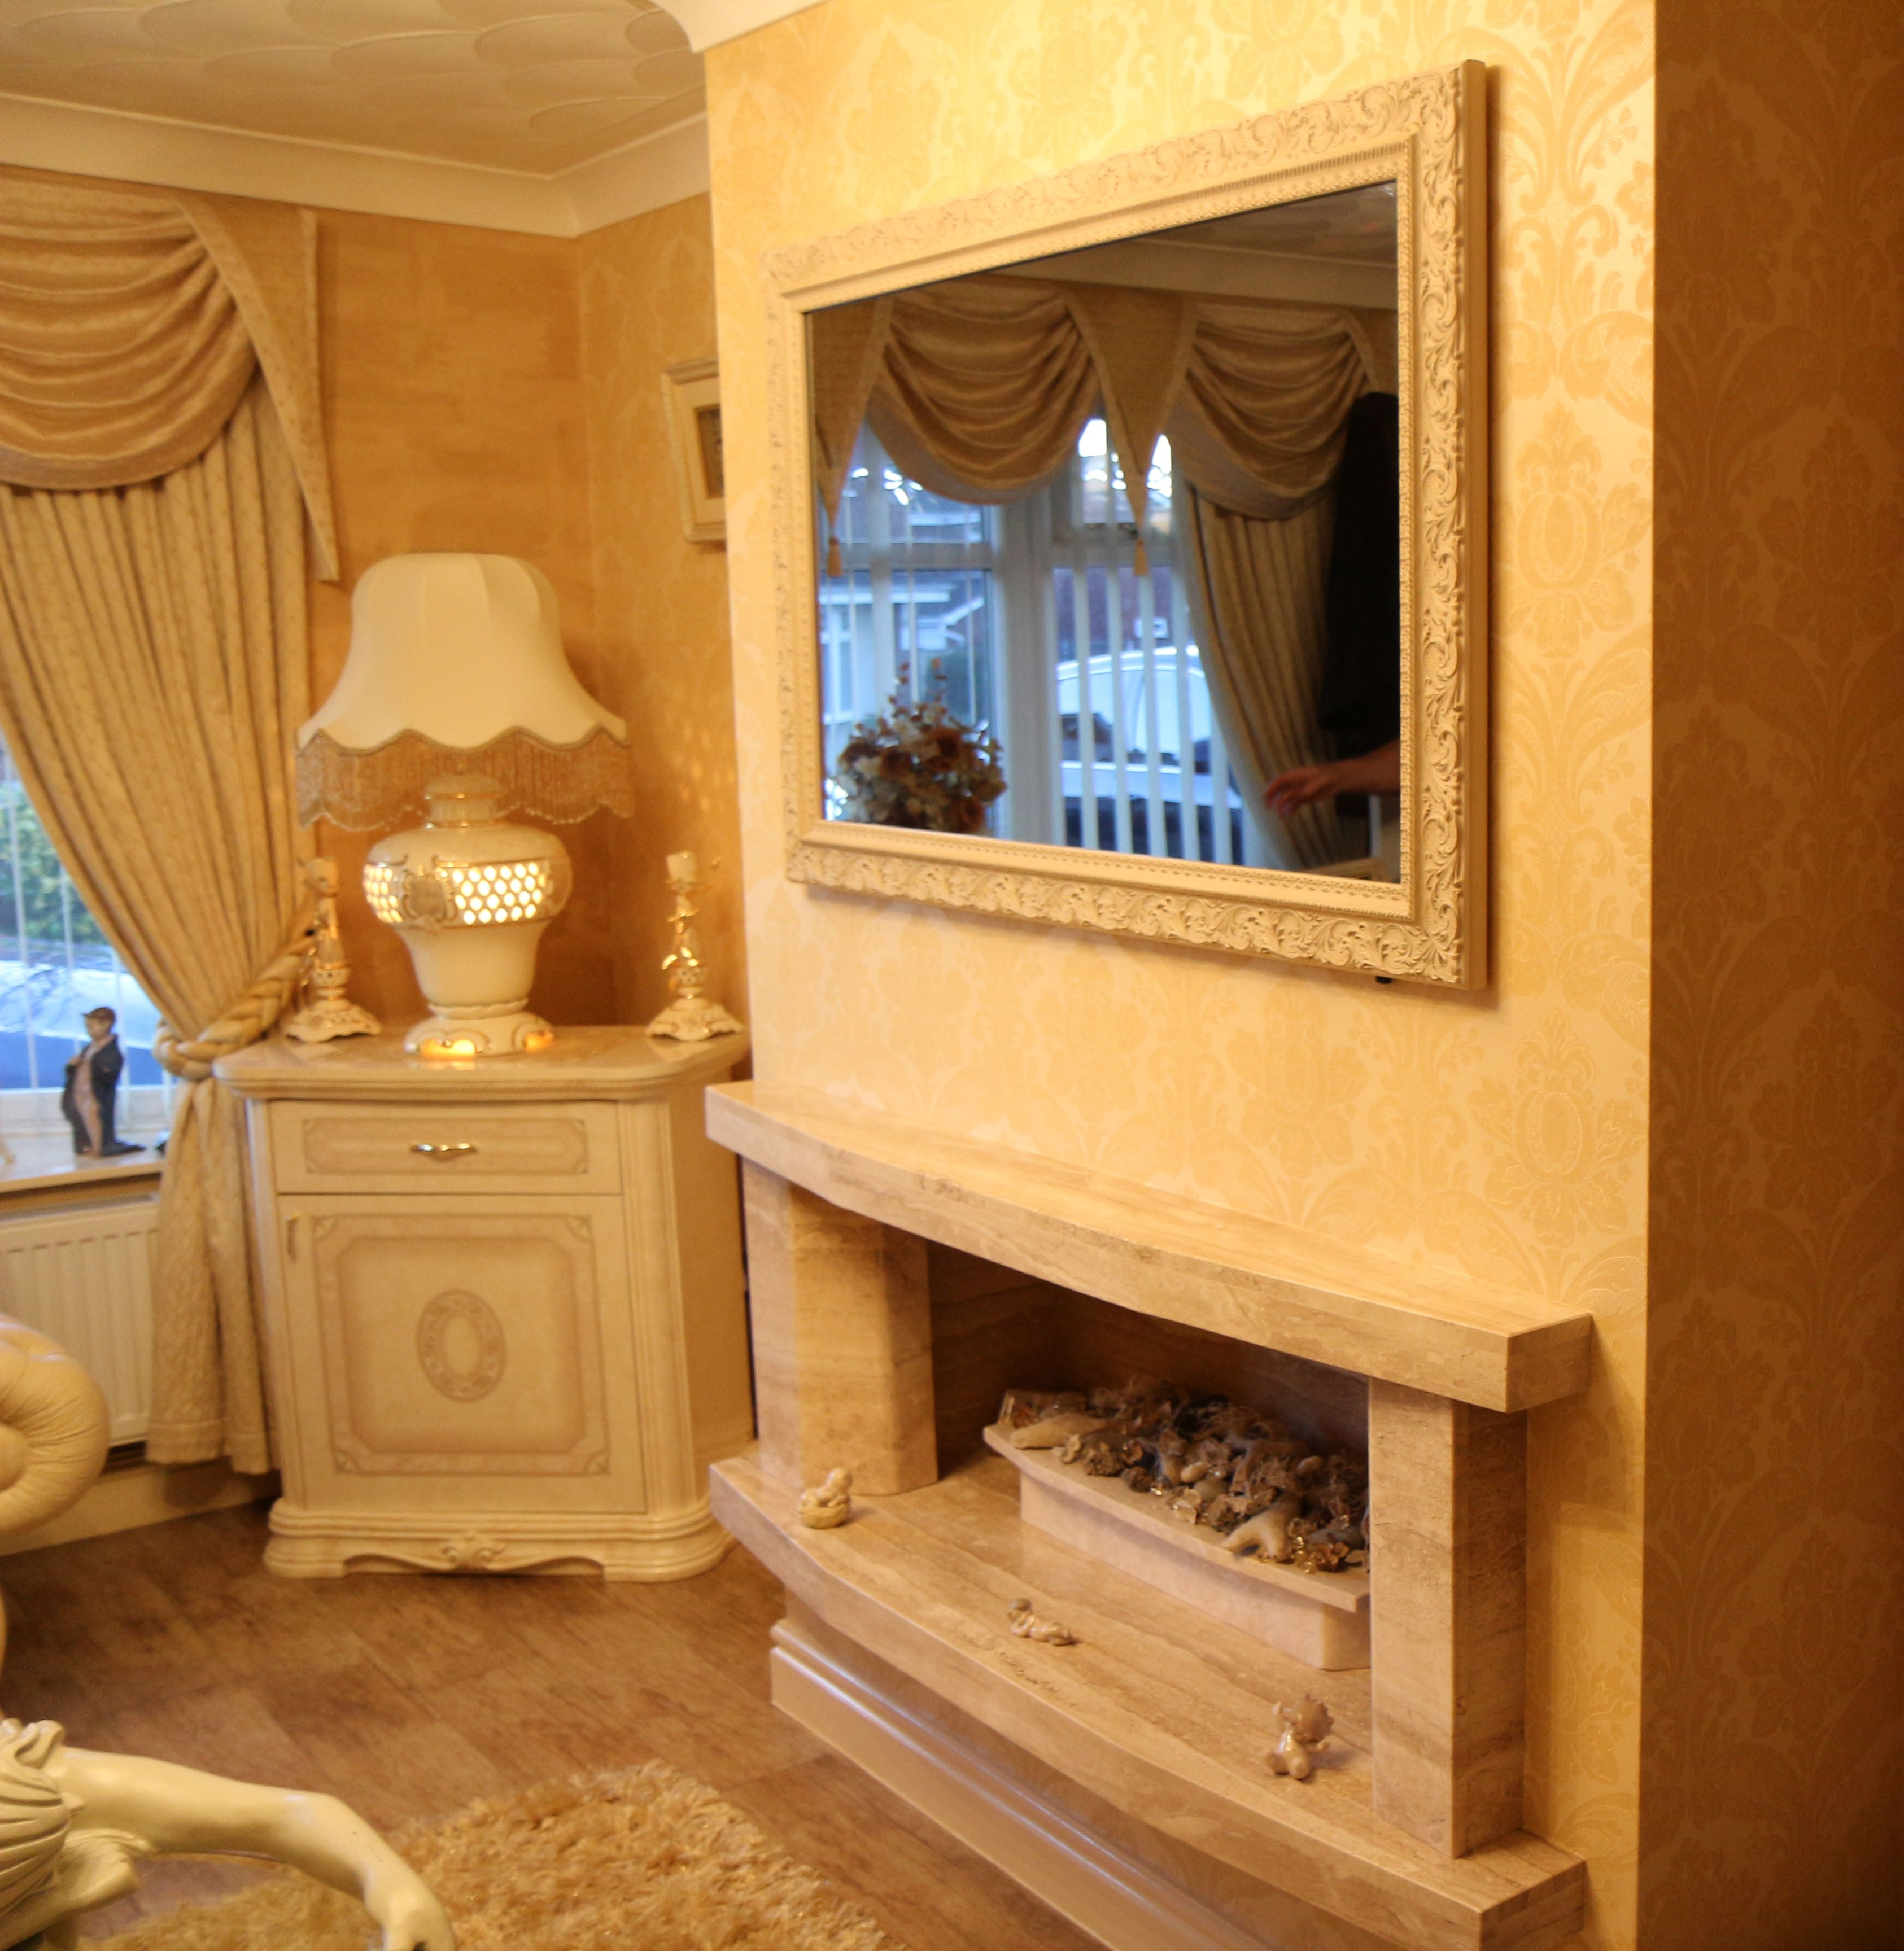 Rome Ivory TV Mirror Frame above a fireplace. www.frameyourtv.co.uk ...